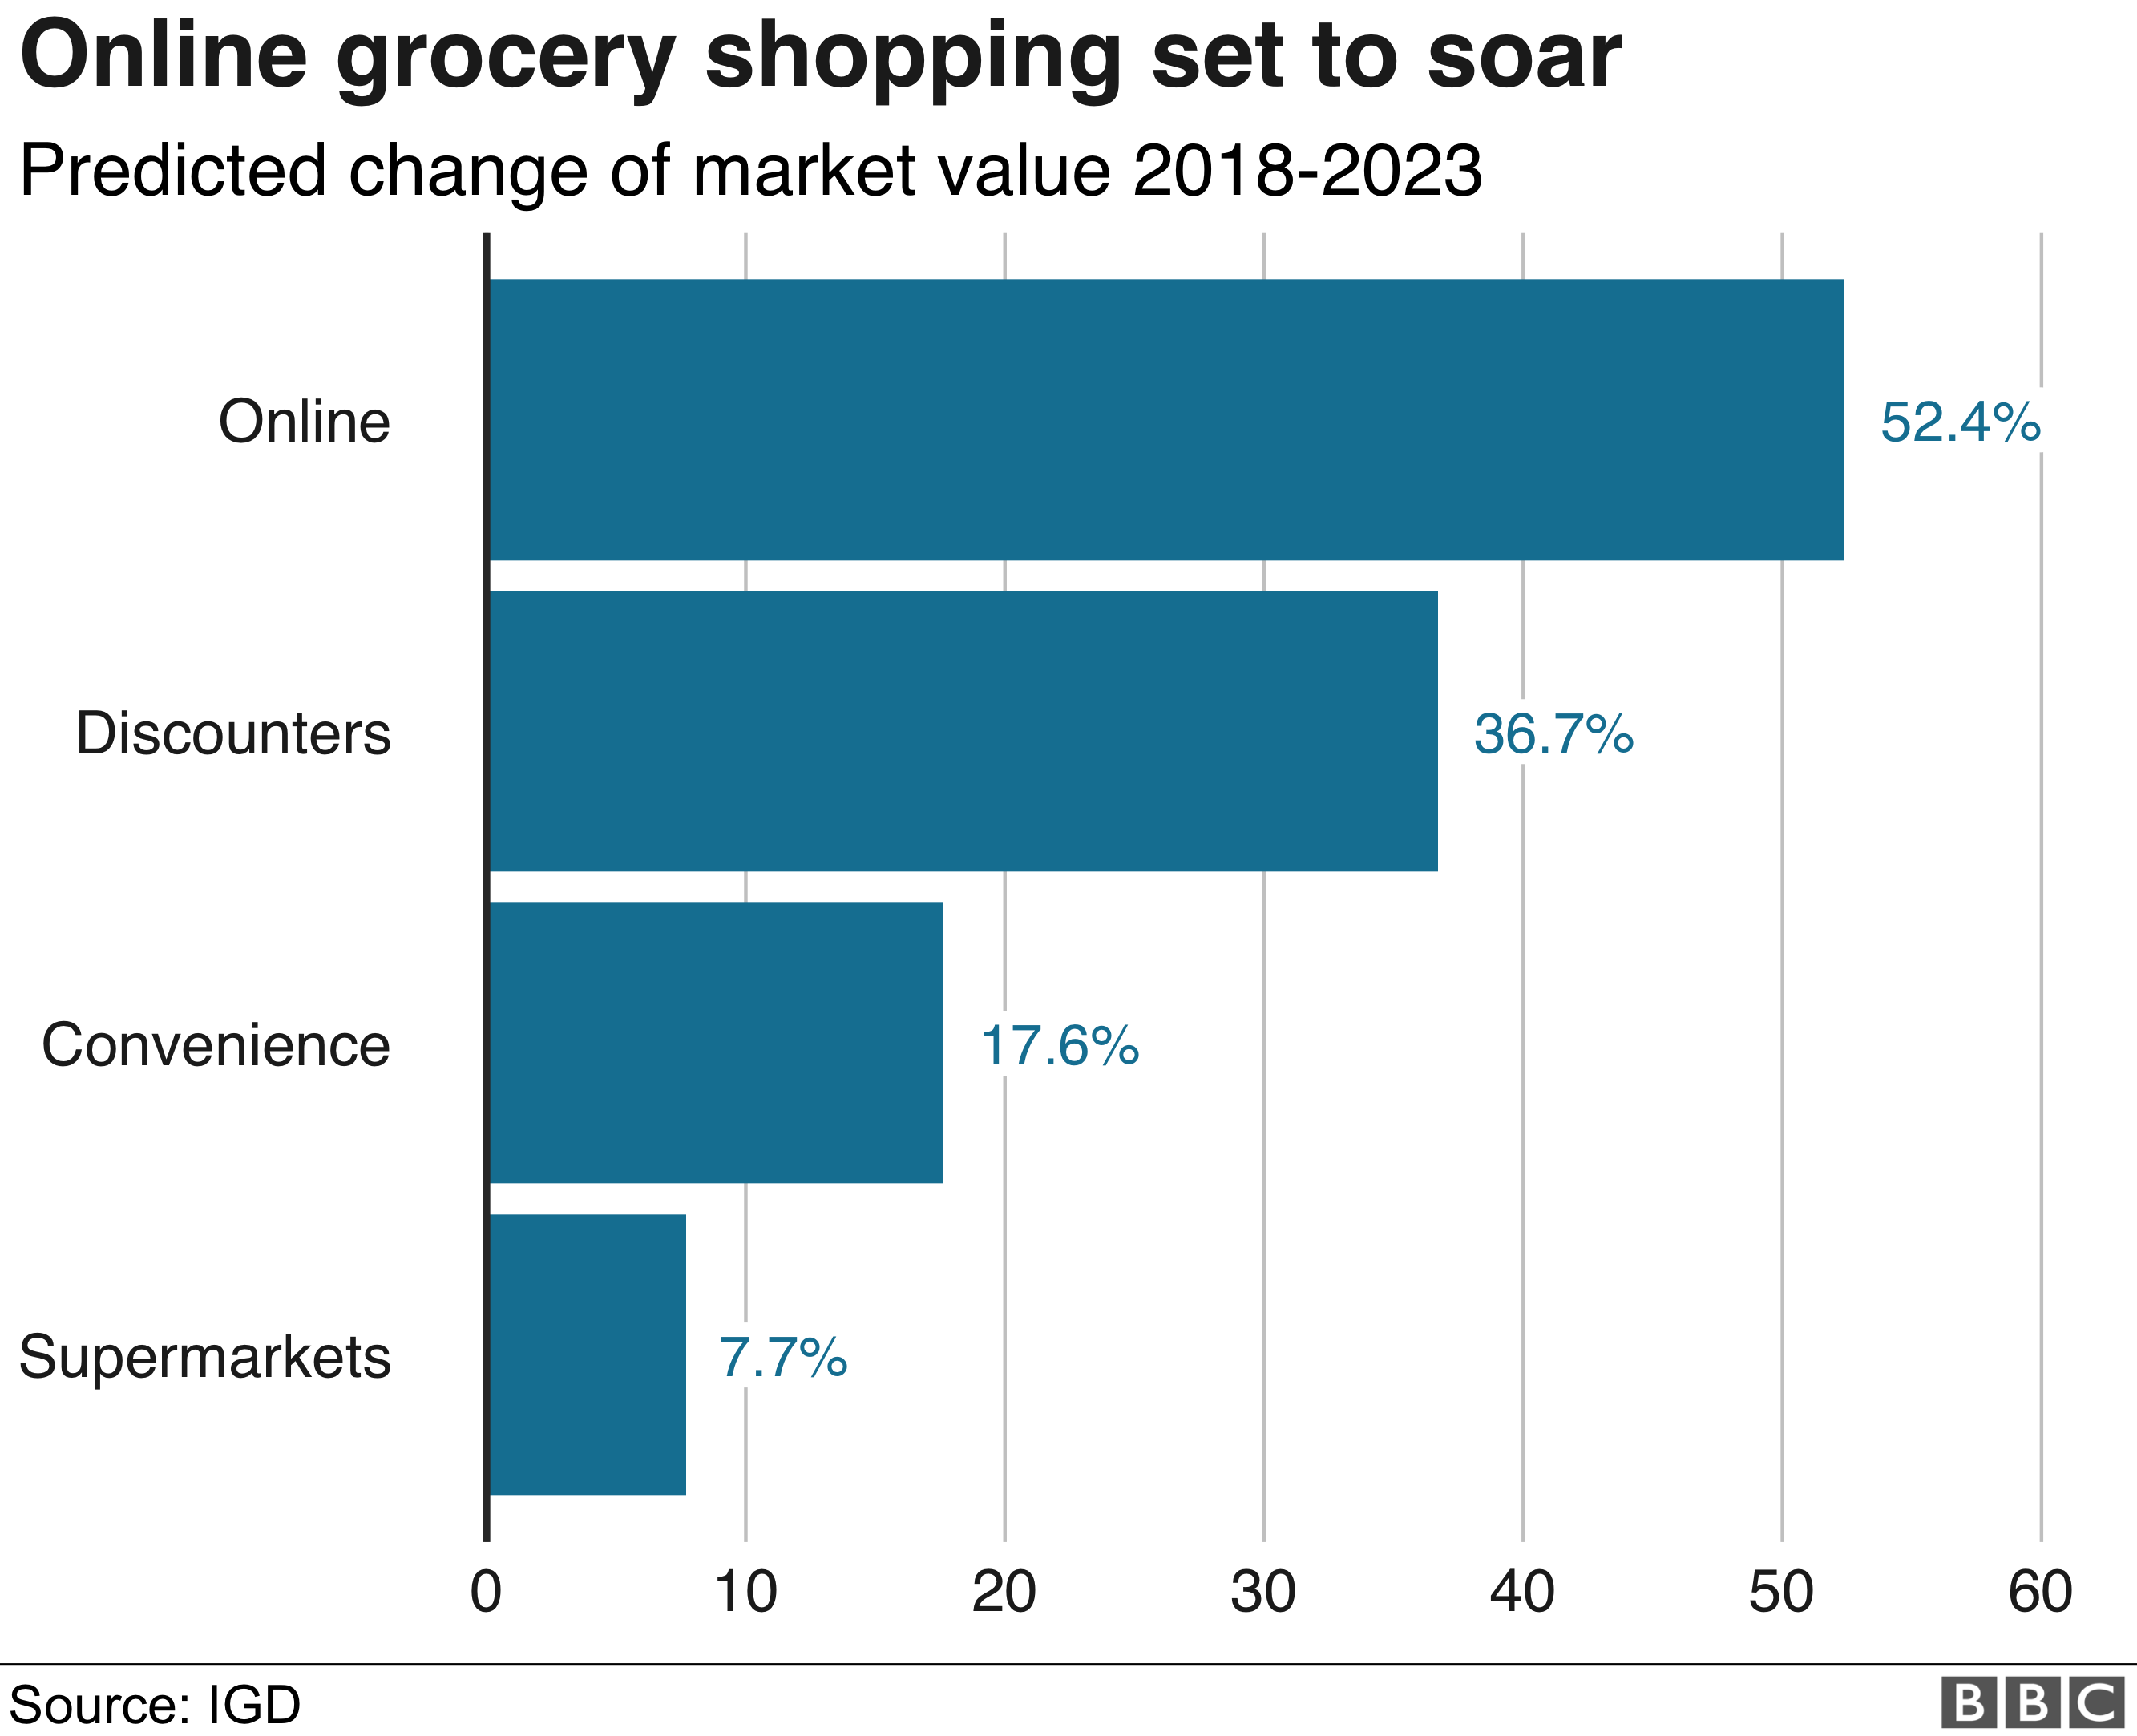 Online grocery shopping set to soar chart